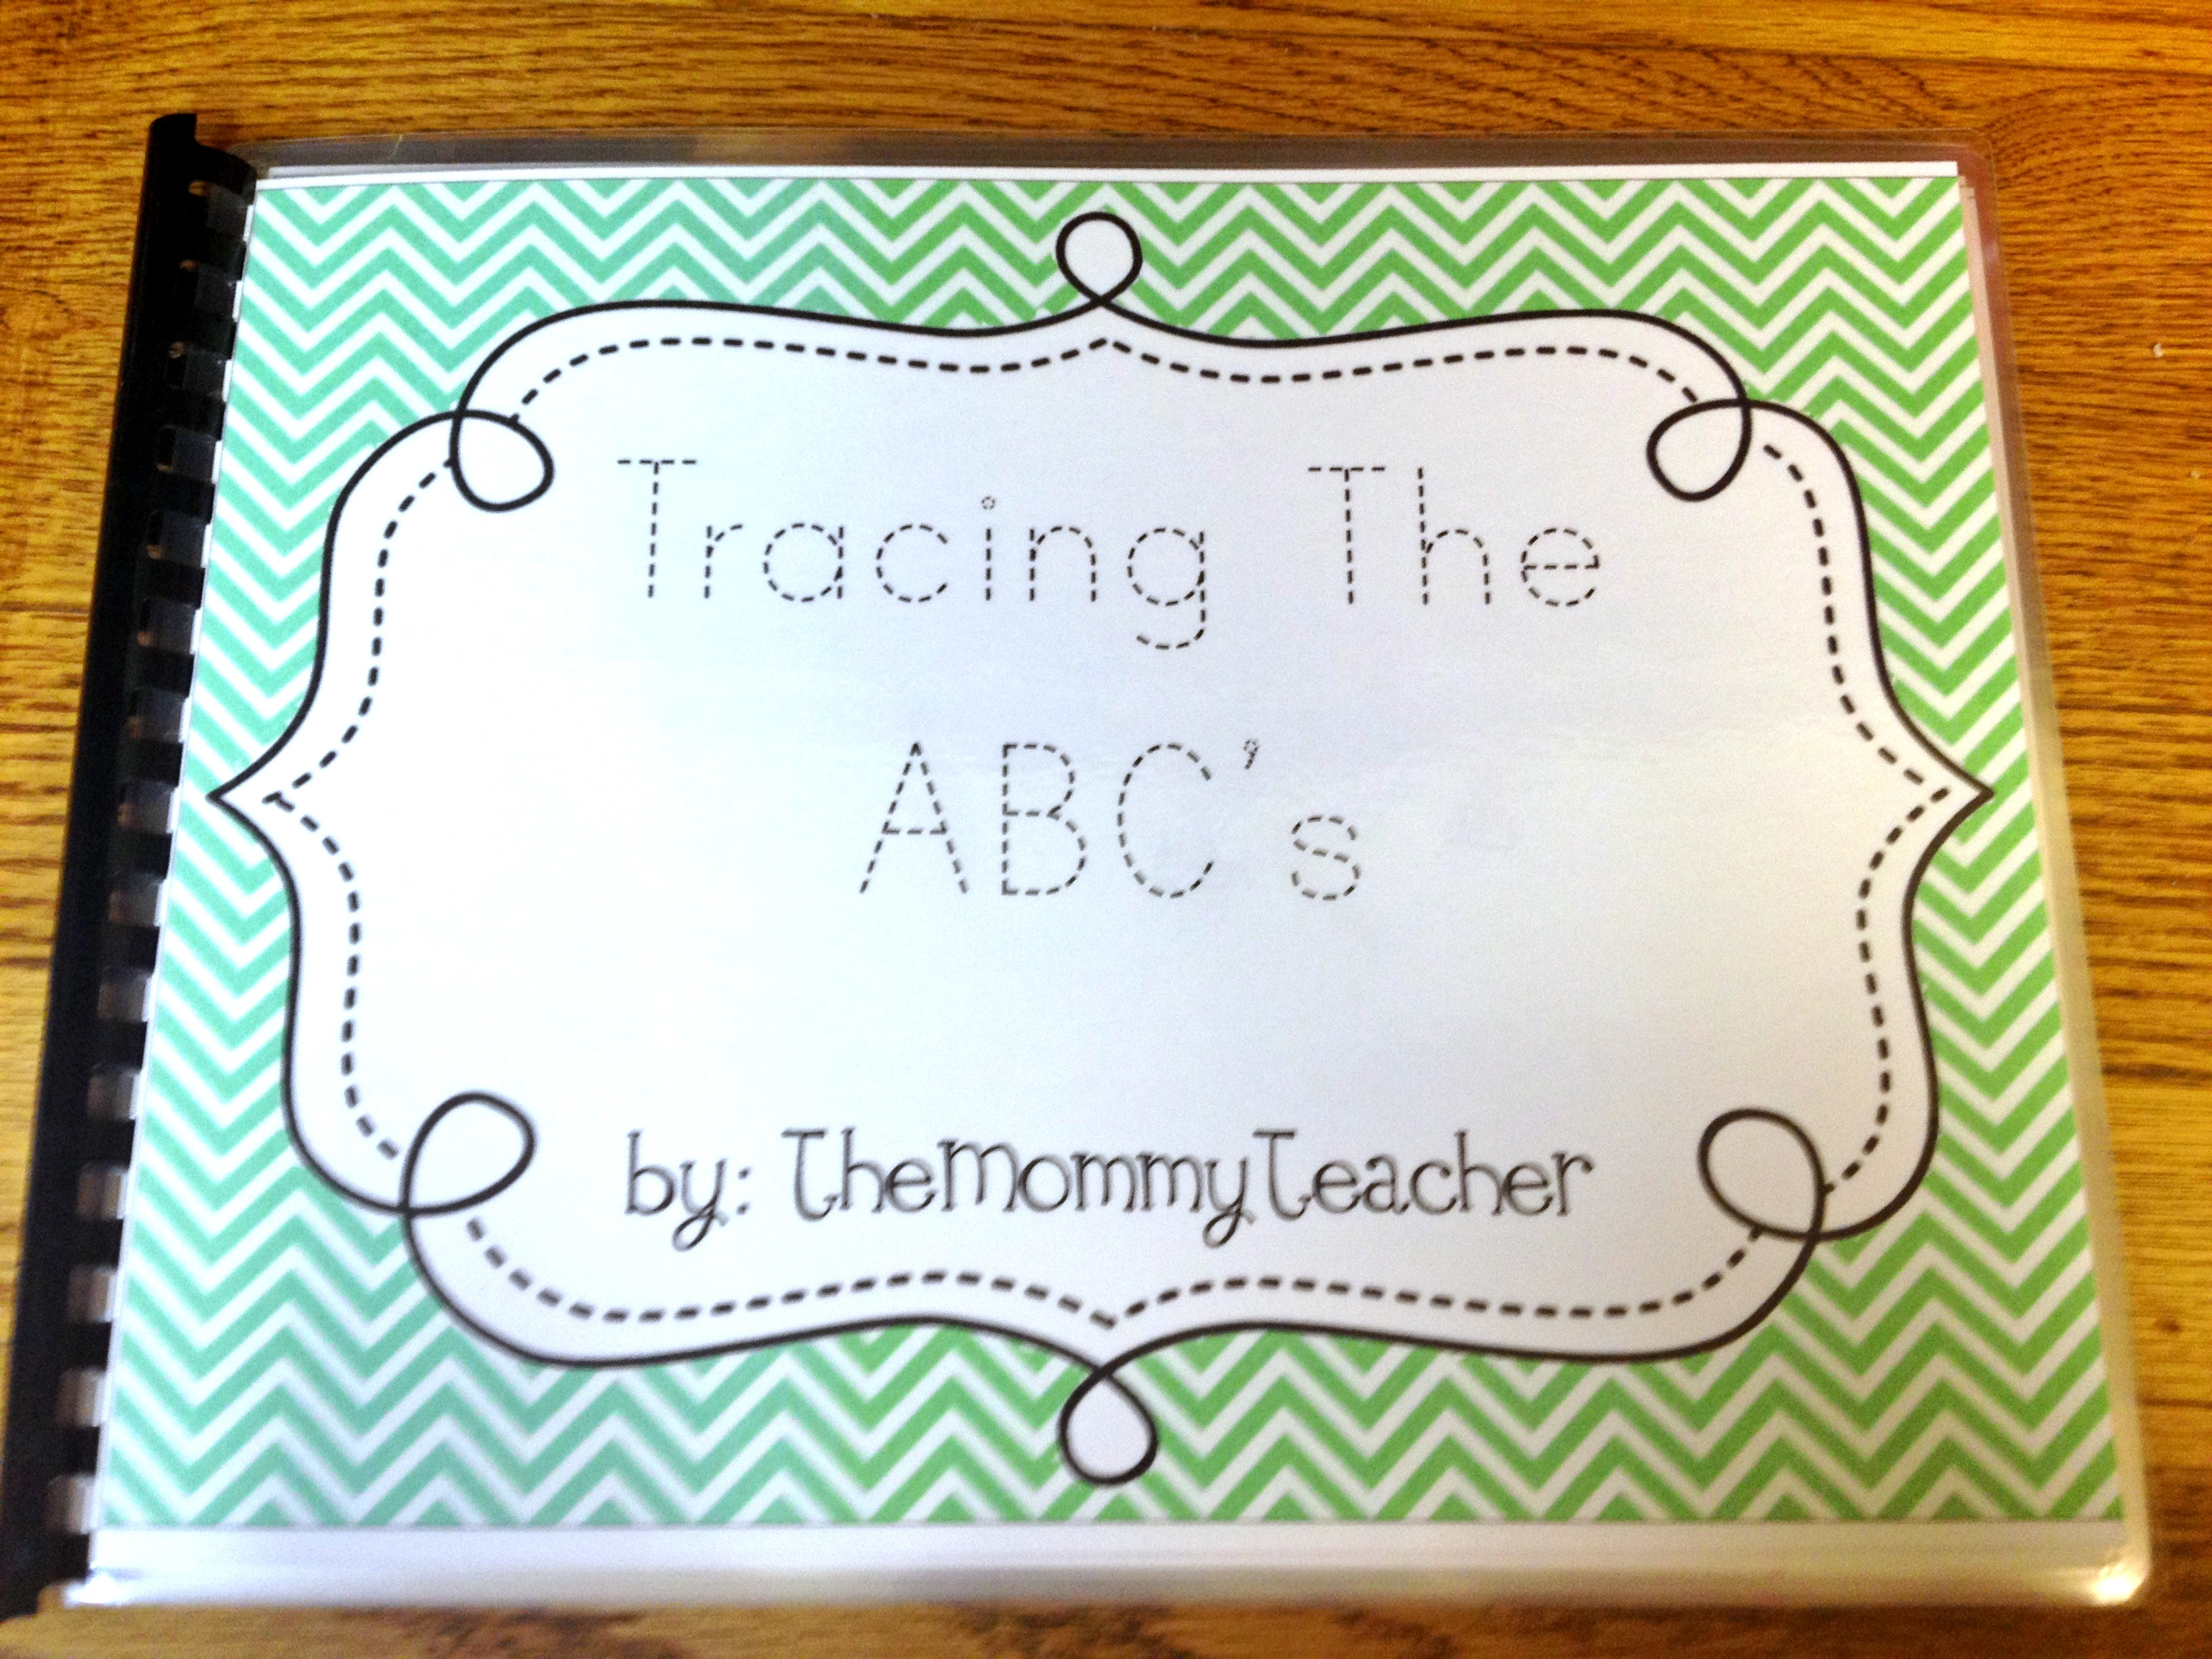 Tracing the abcs book the mommy teacher tracing the abcs book altavistaventures Image collections